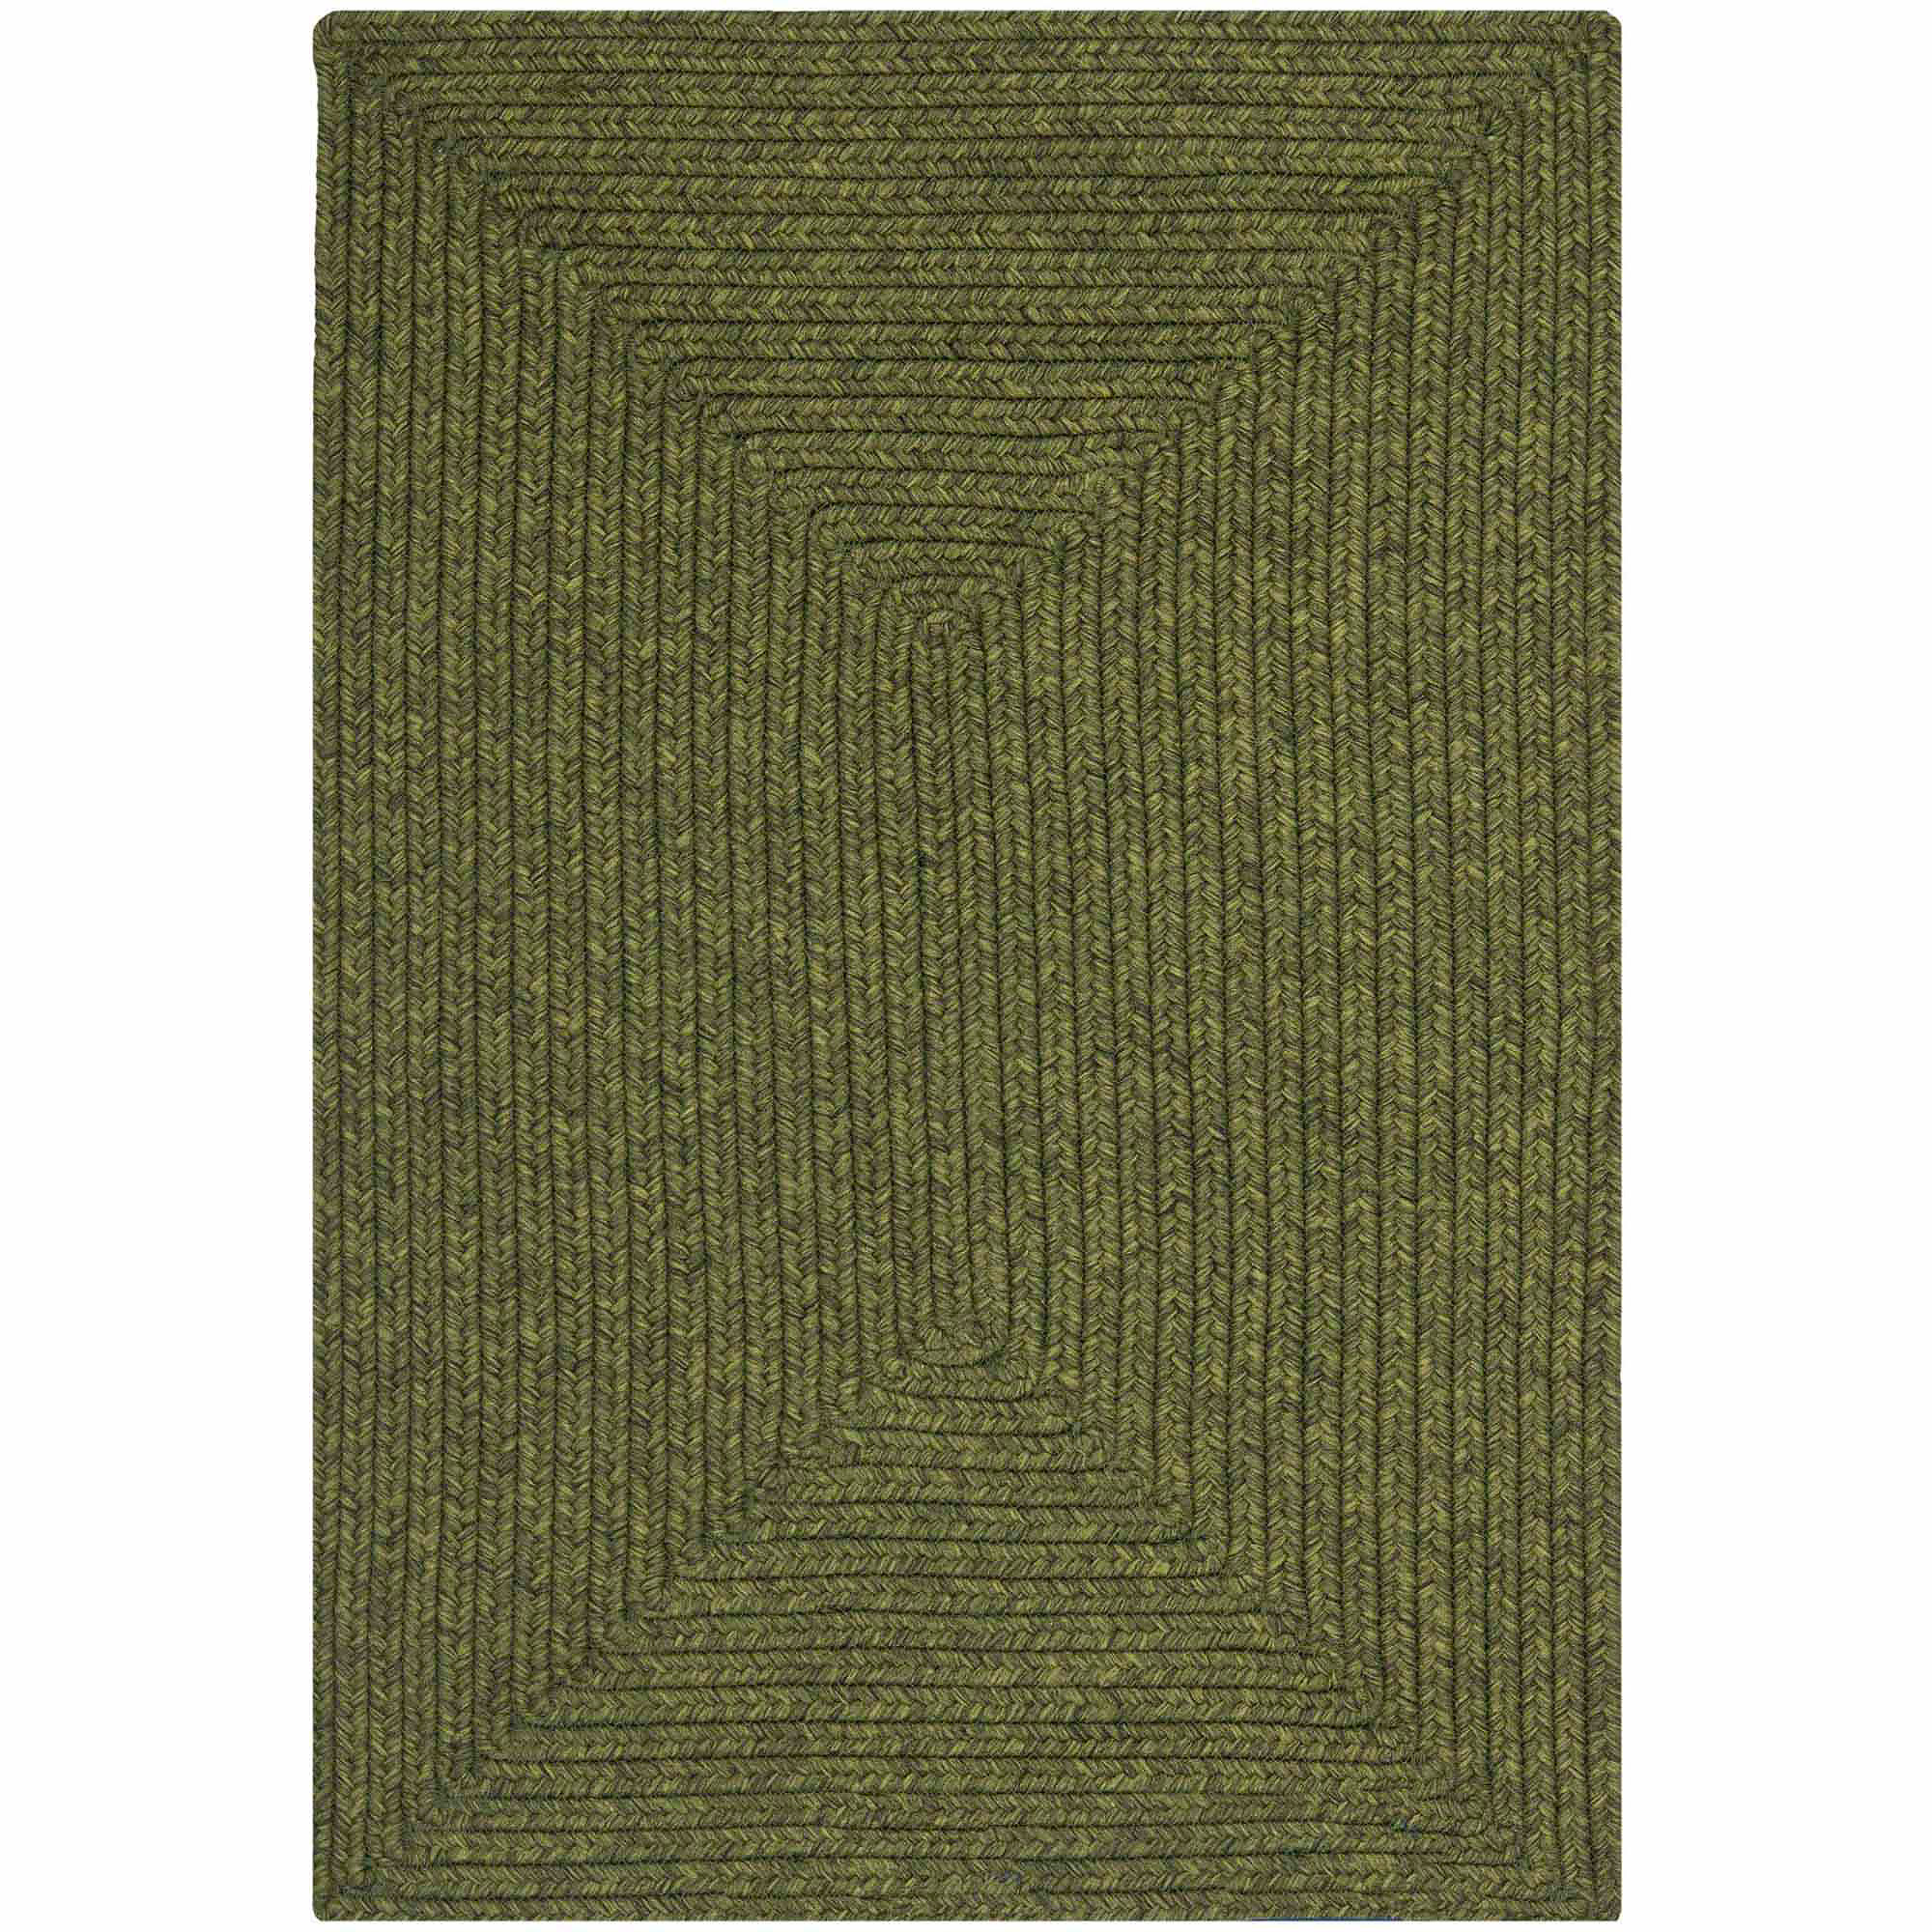 Safavieh Braided Luis Polypropylene Area Rug, Green